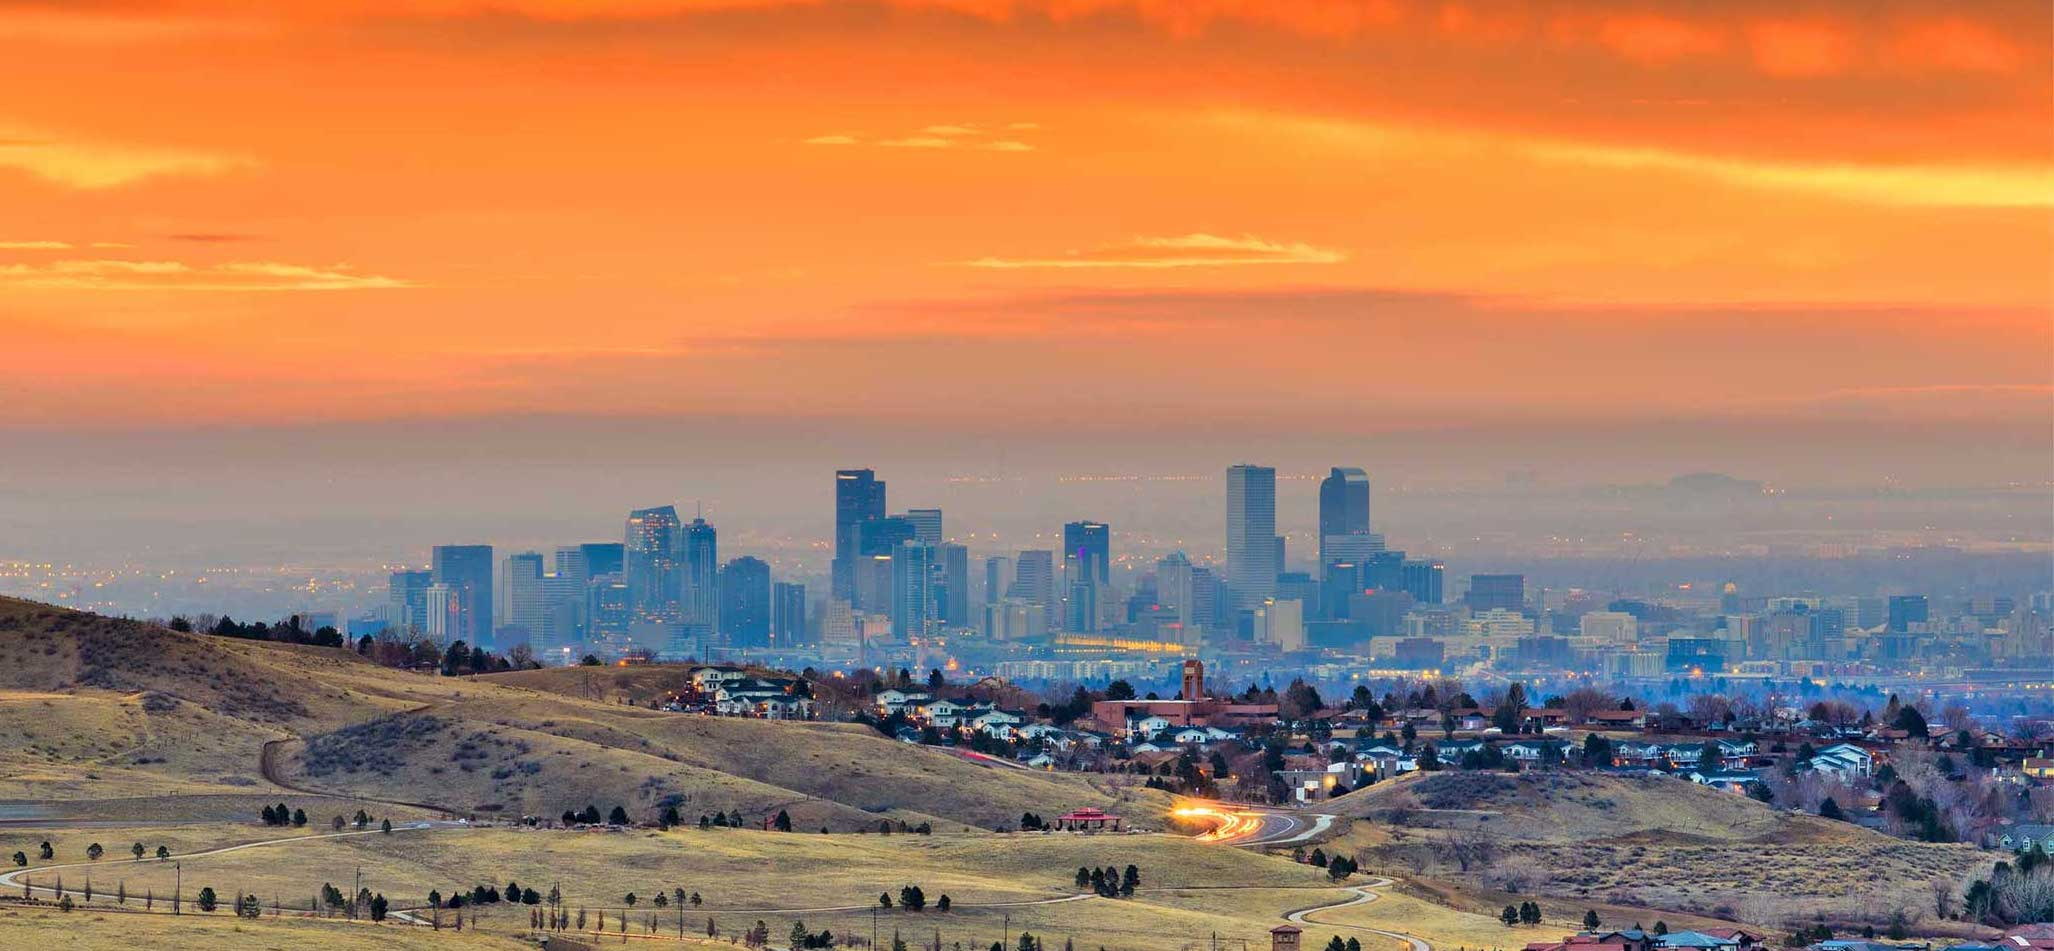 You Now Must Accept Section 8 in Your Denver Rental Property